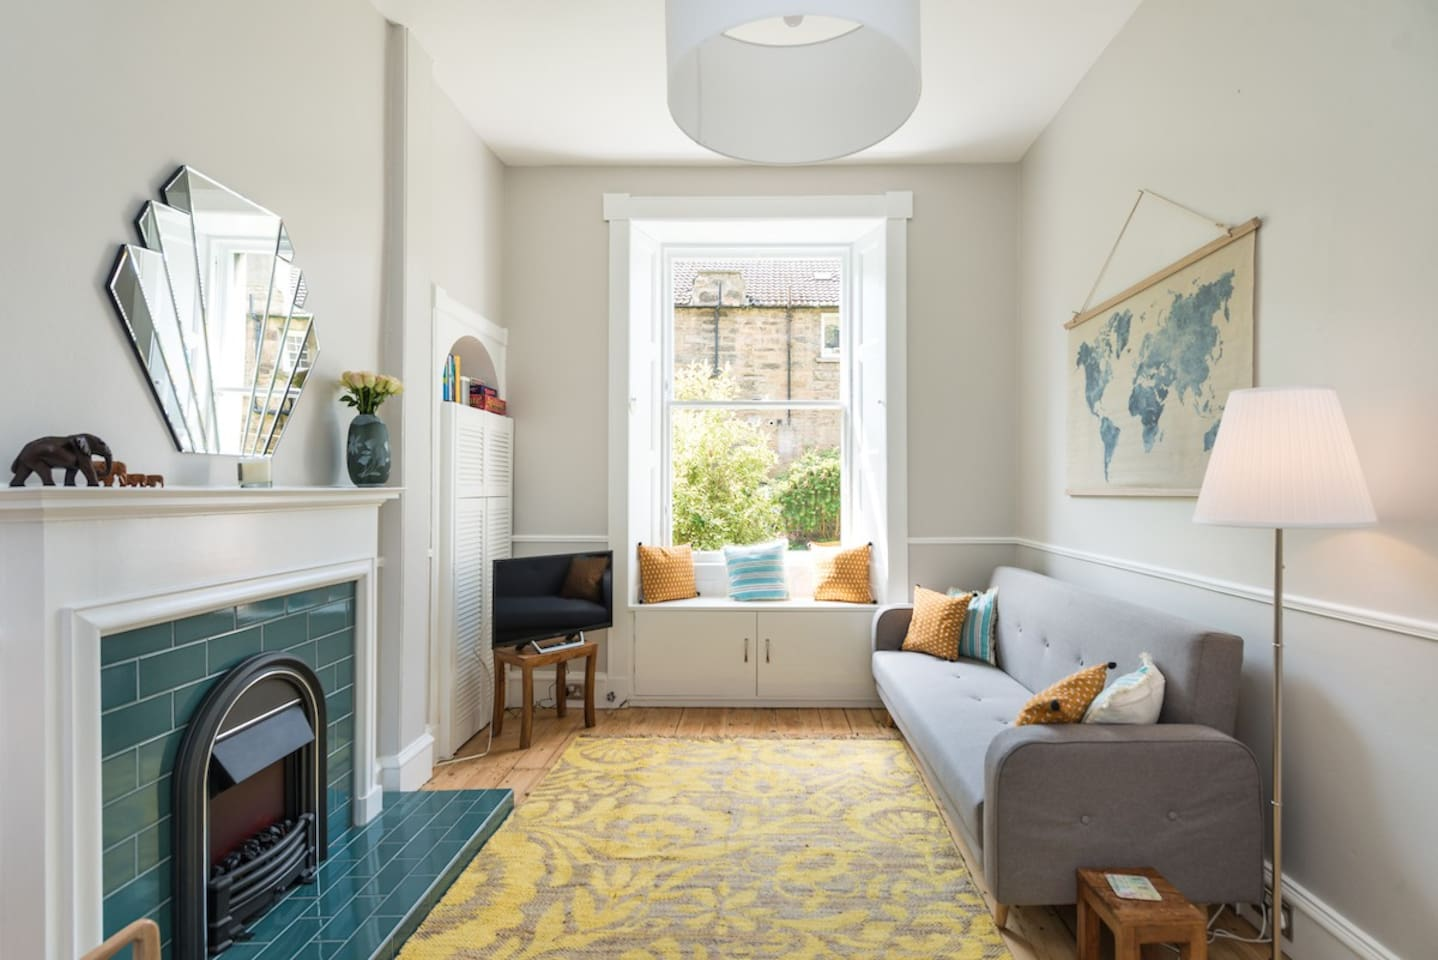 Our bright and sunny lounge overlooks the quiet, shared back garden.